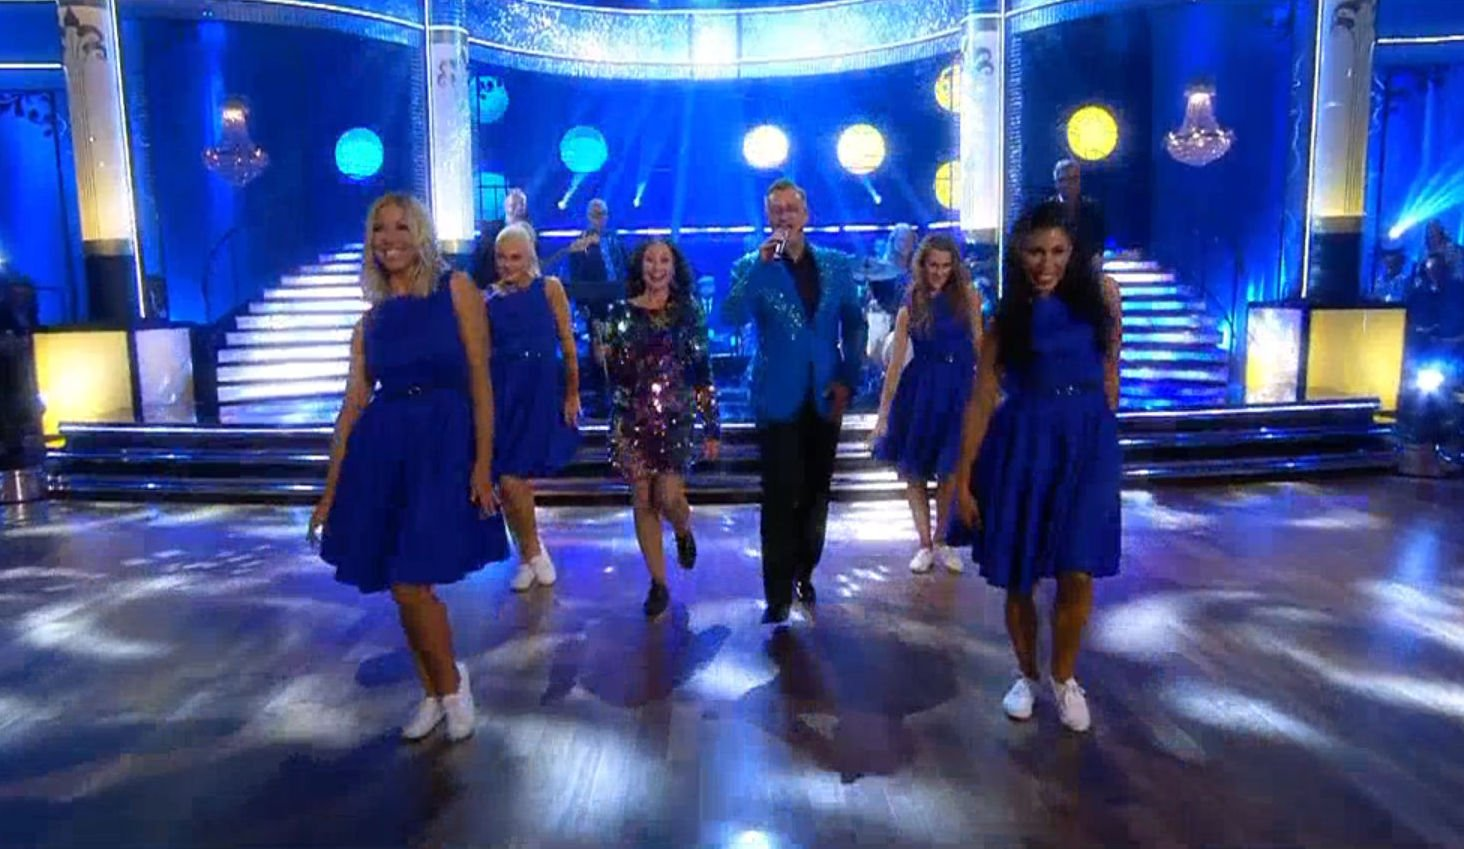 jetsettrends i Lets Dance semifinal 2019